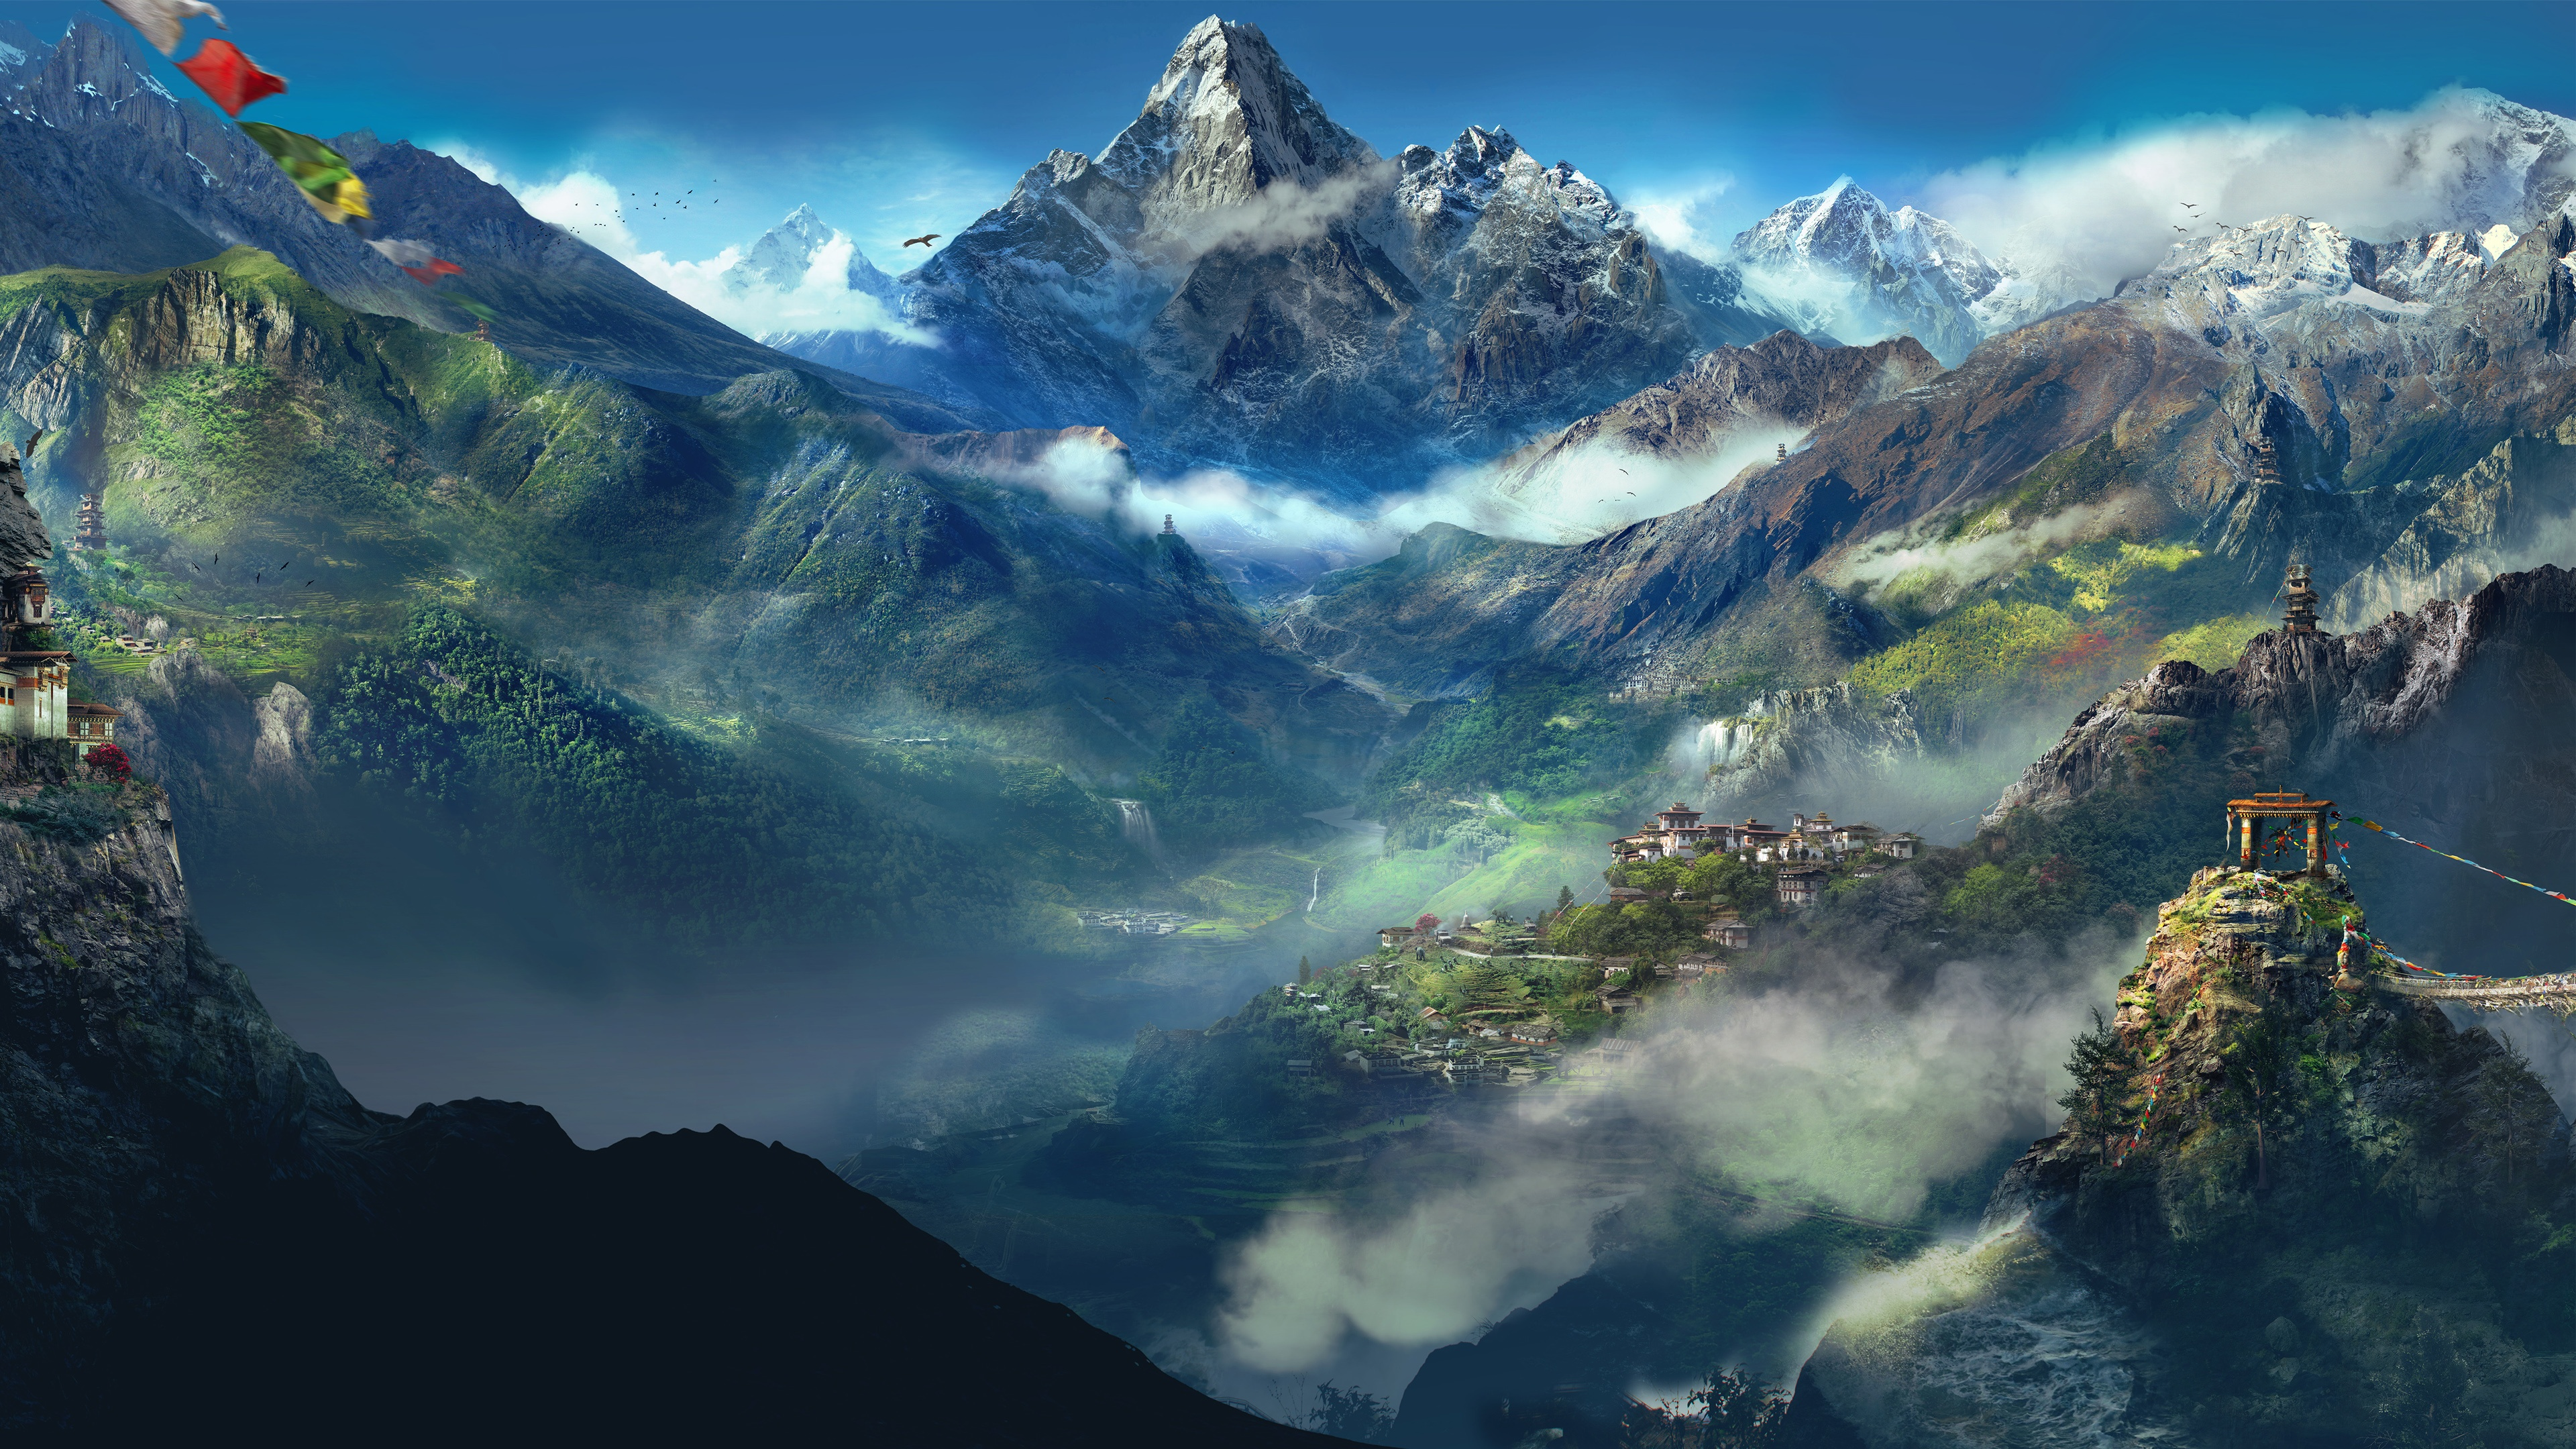 Far cry himalayas wallpapers in jpg format for free download - Far cry 4 wallpaper ...